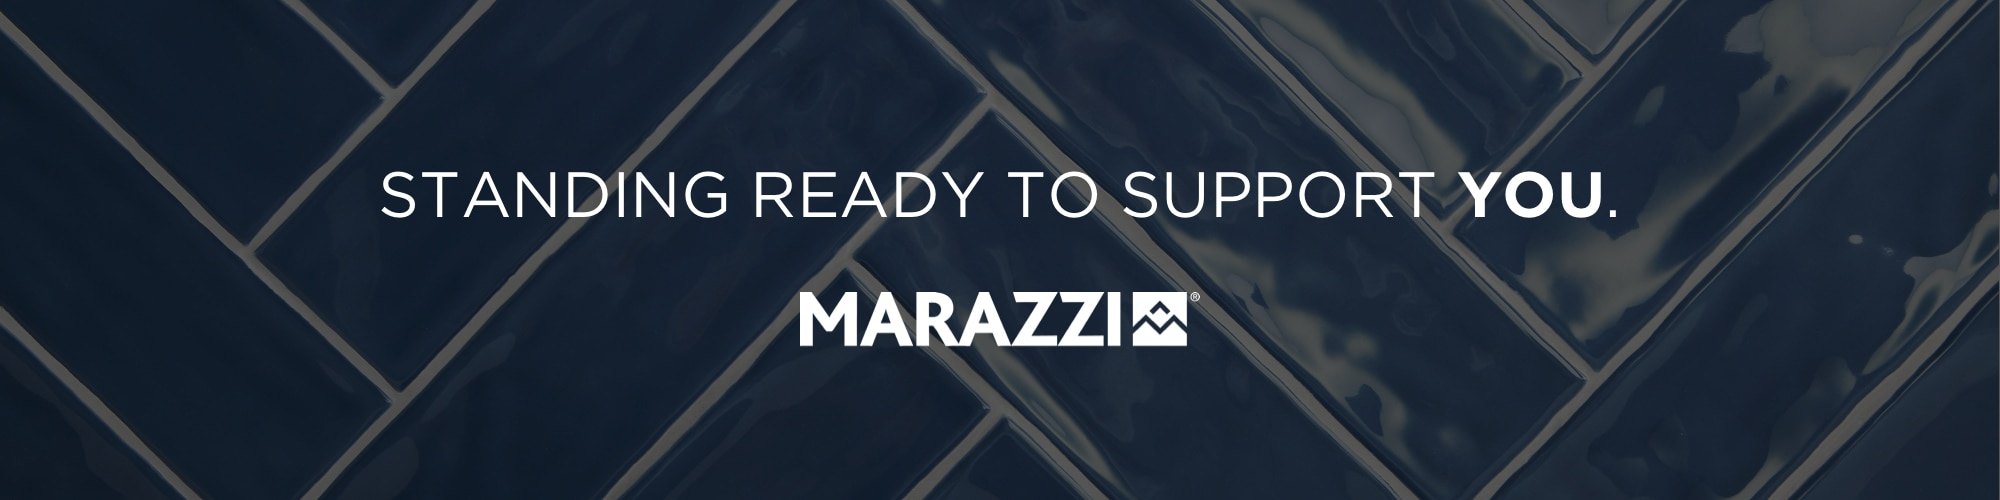 MZ_support_banner